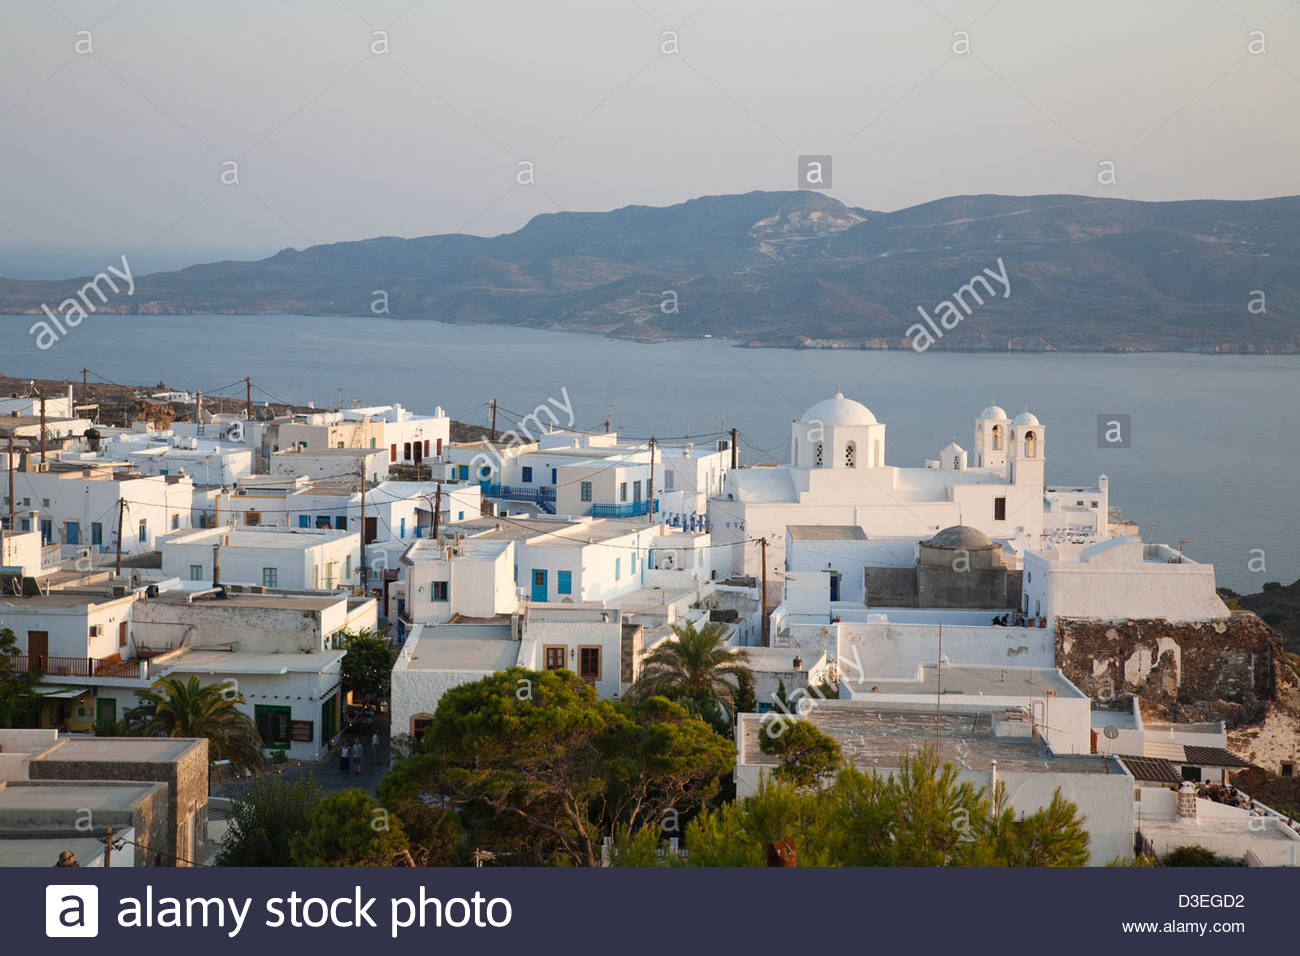 plaka village,milos island,cyclades islands,greece - Stock Image